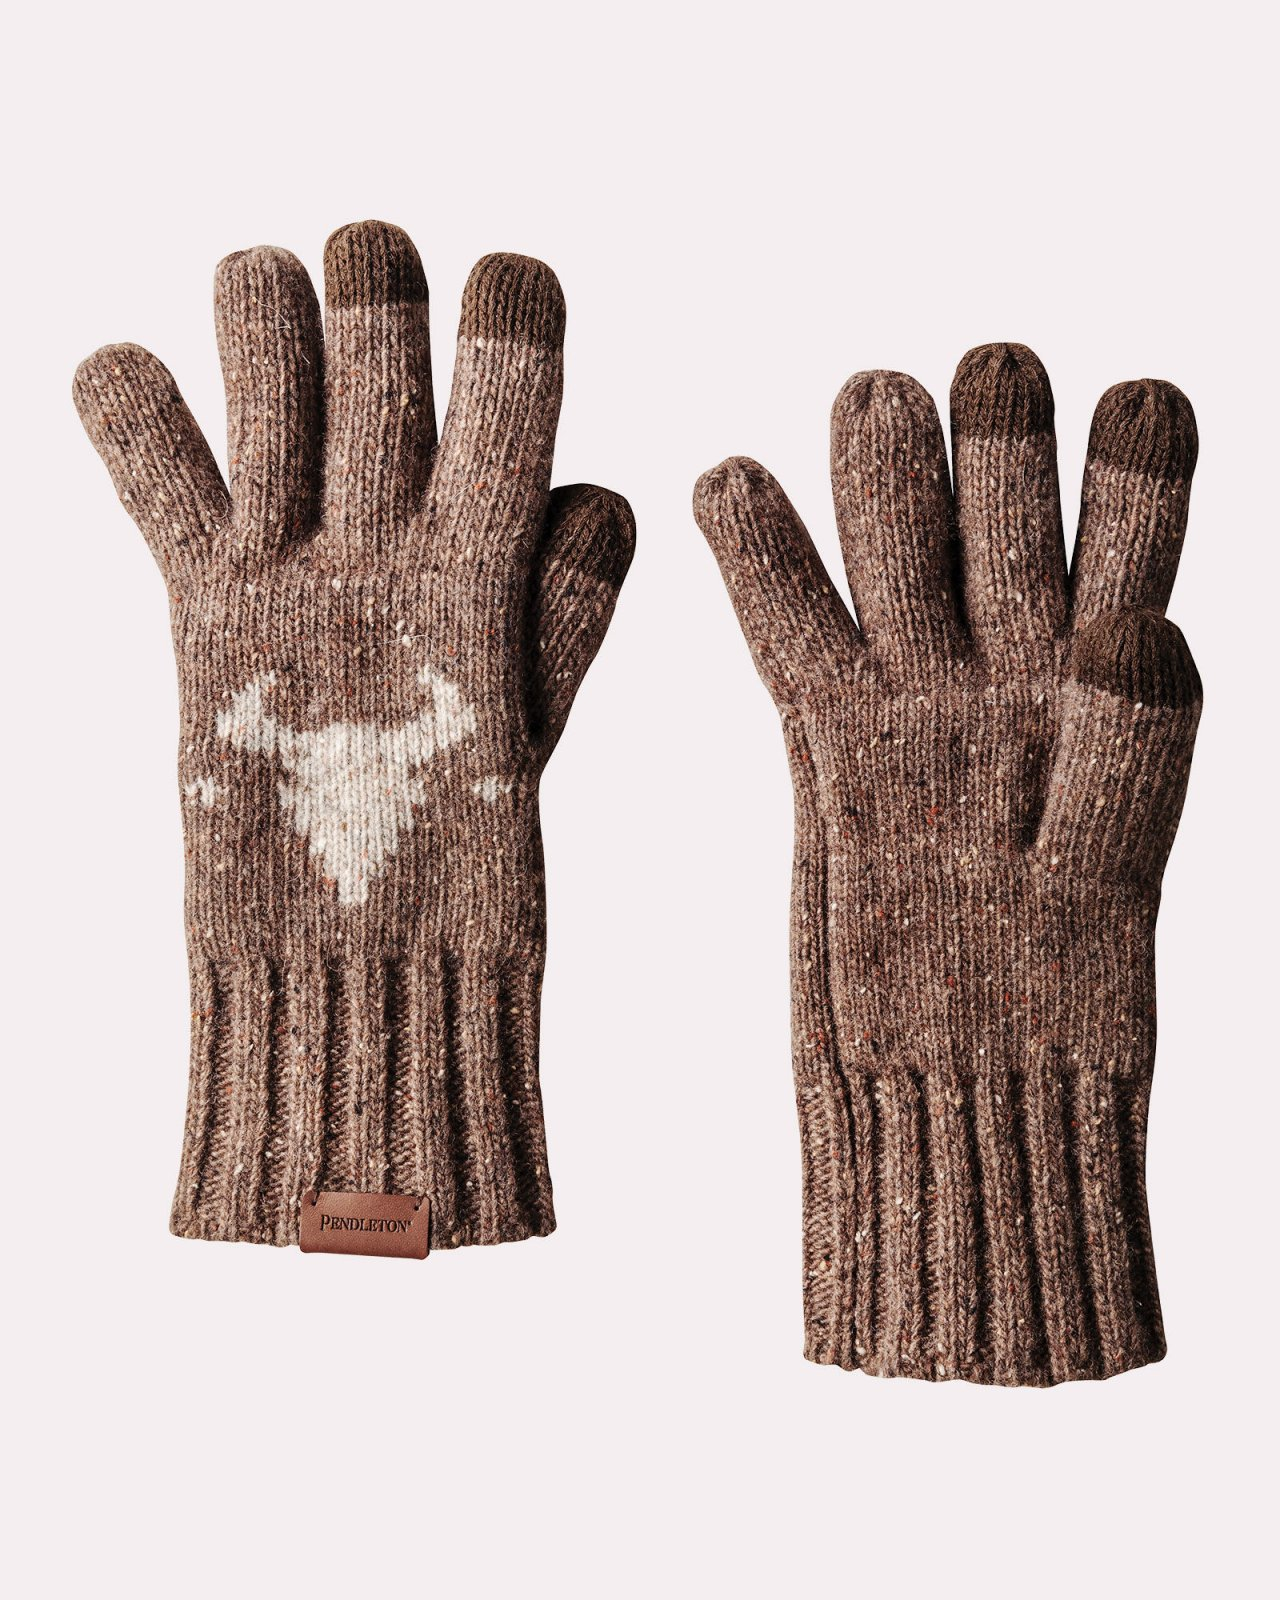 Jacquard Gloves from Pendleton